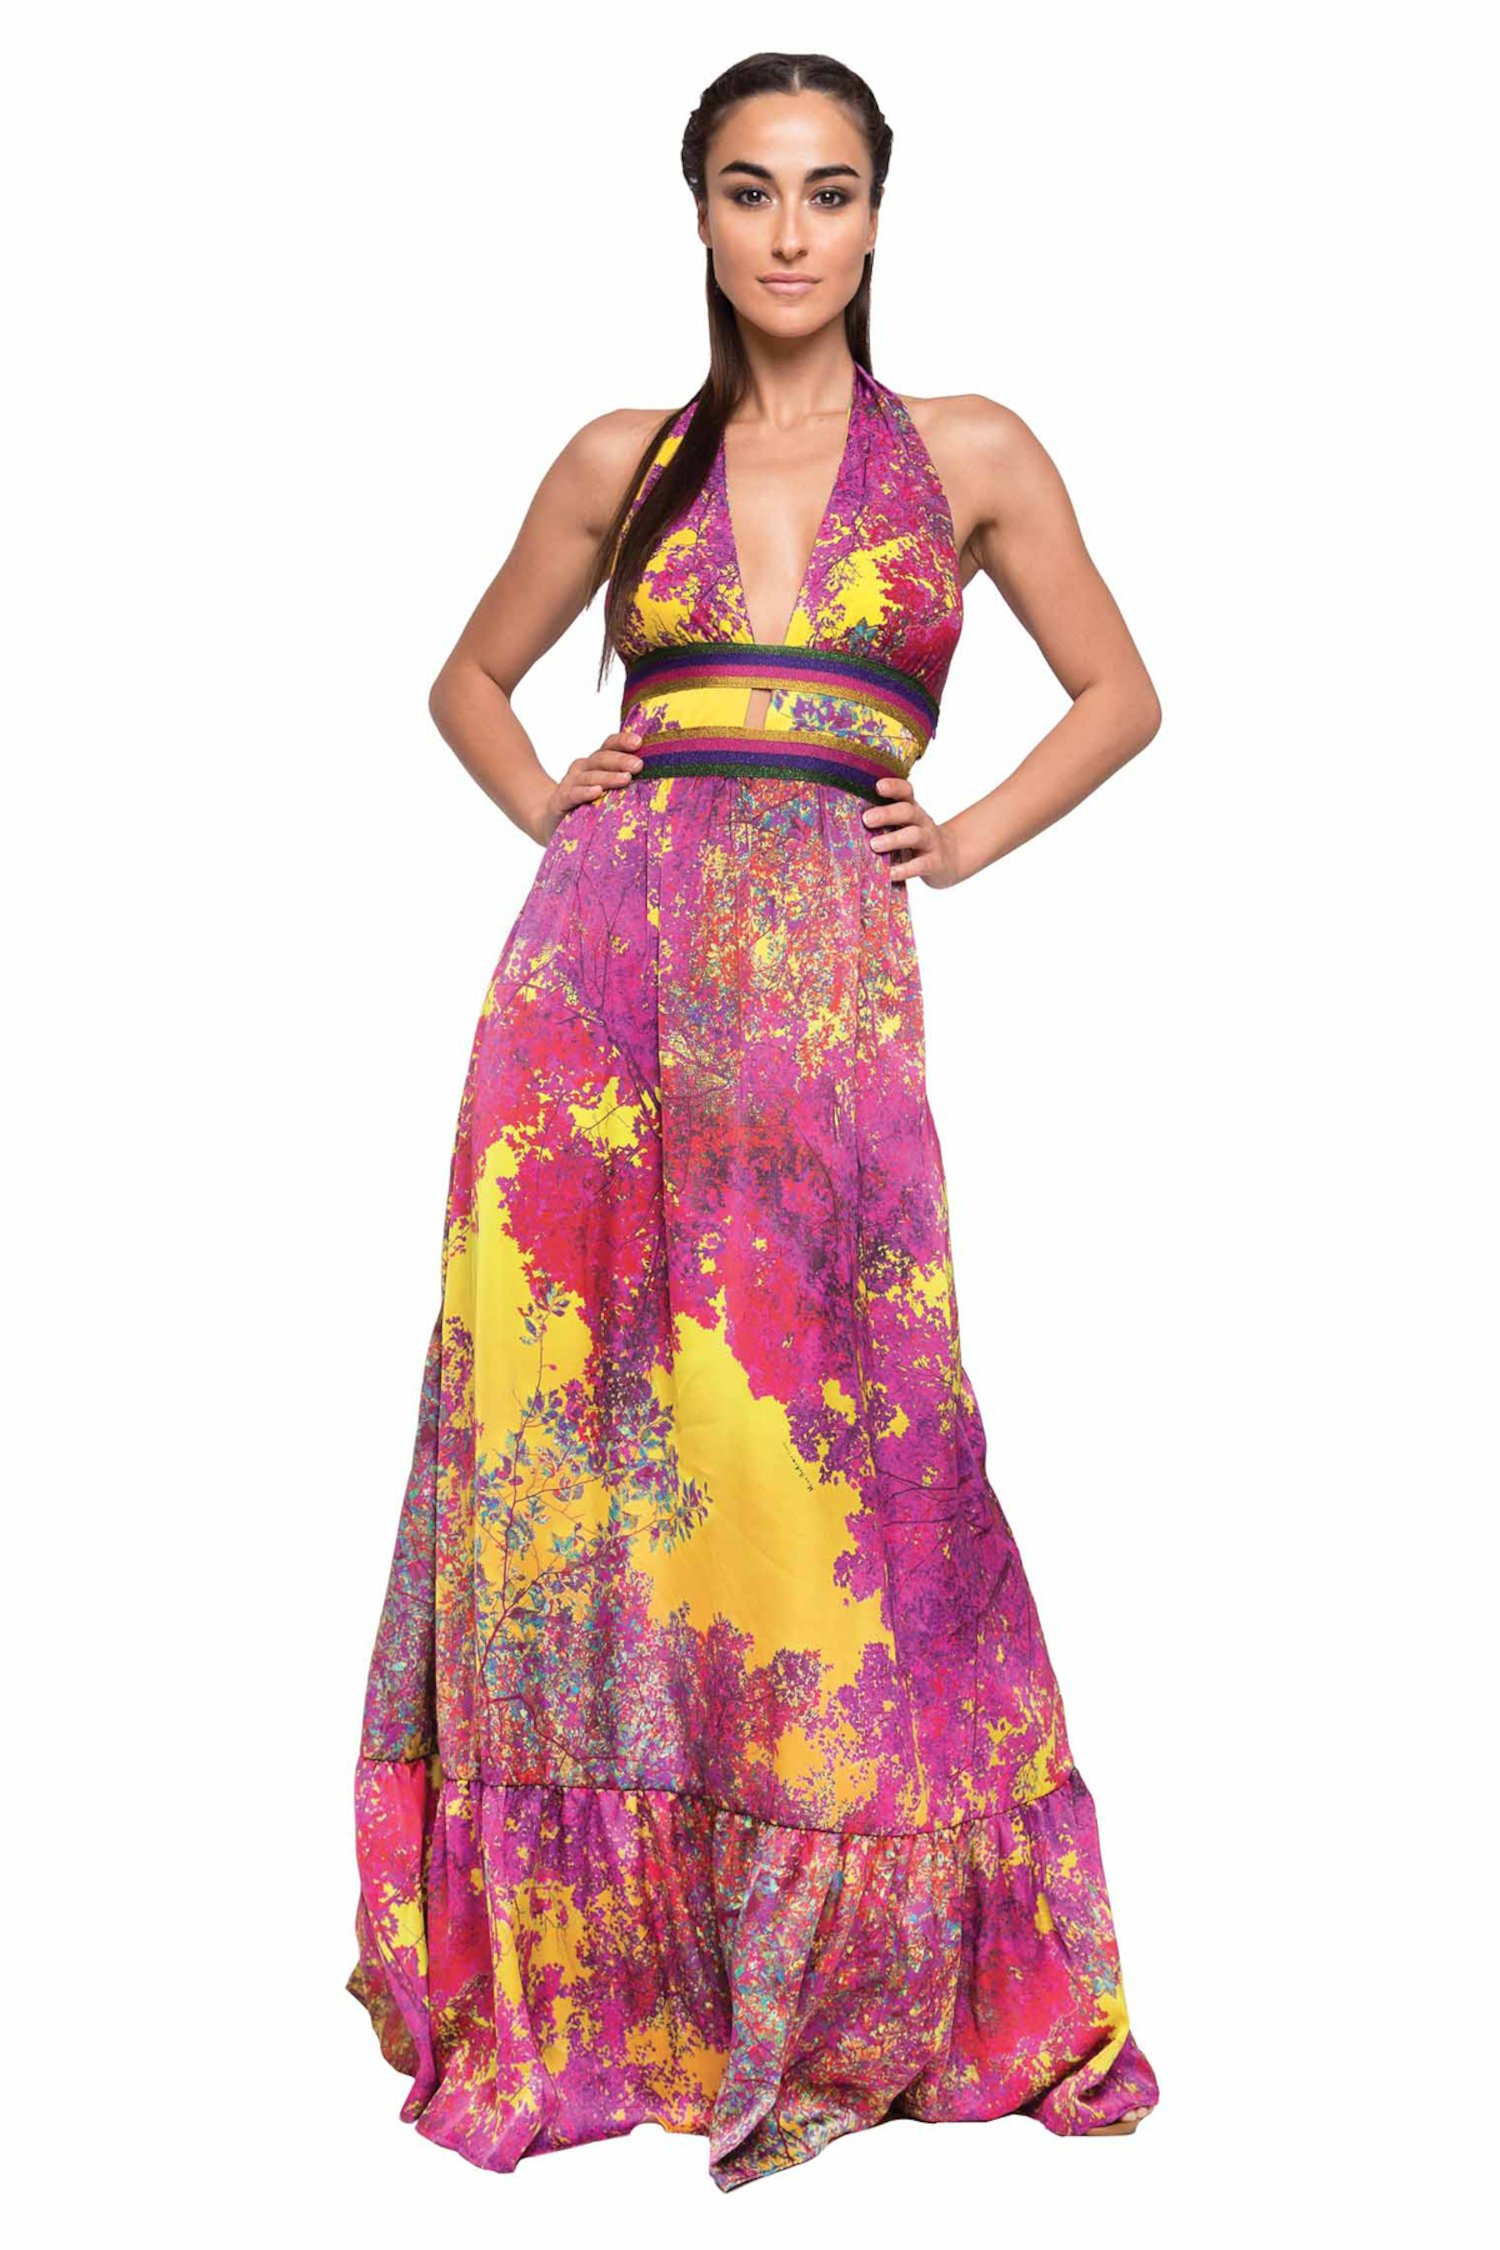 LONG DRESS HALTER COPS WITH TREES